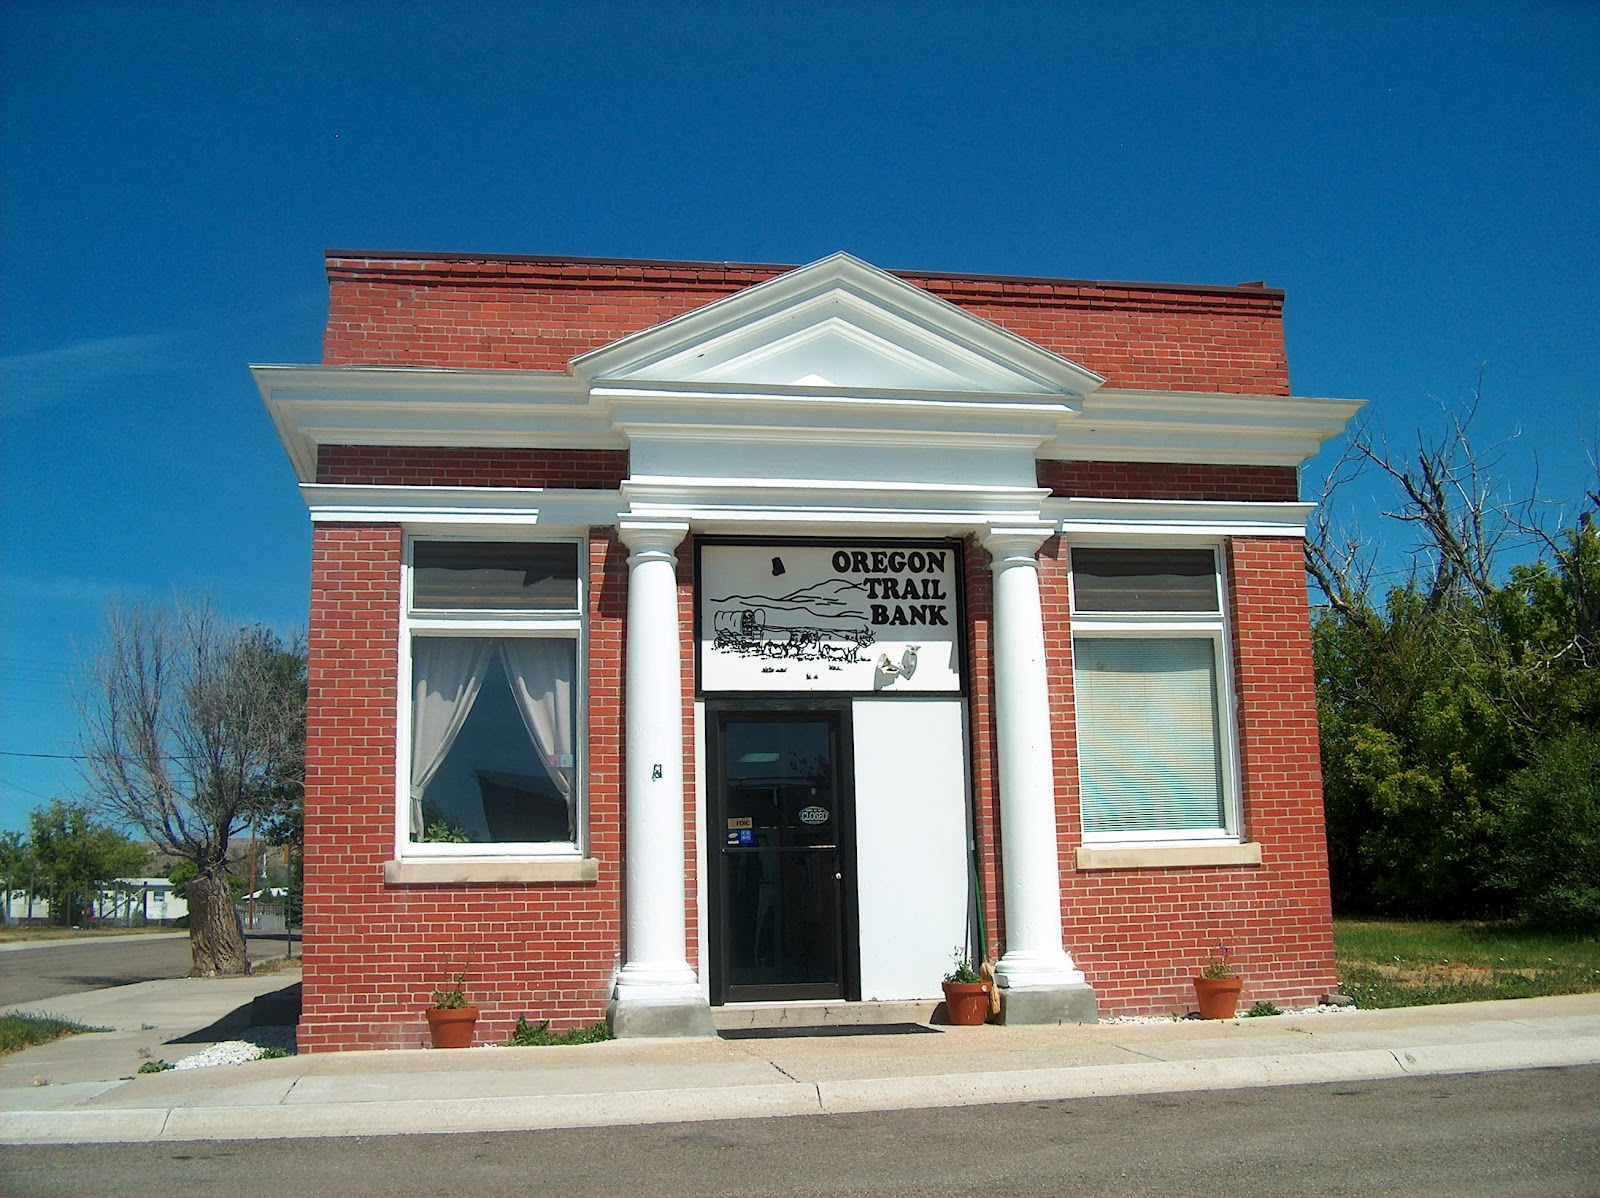 The whole town had an air of days gone by. I'm sure this bank is an ...